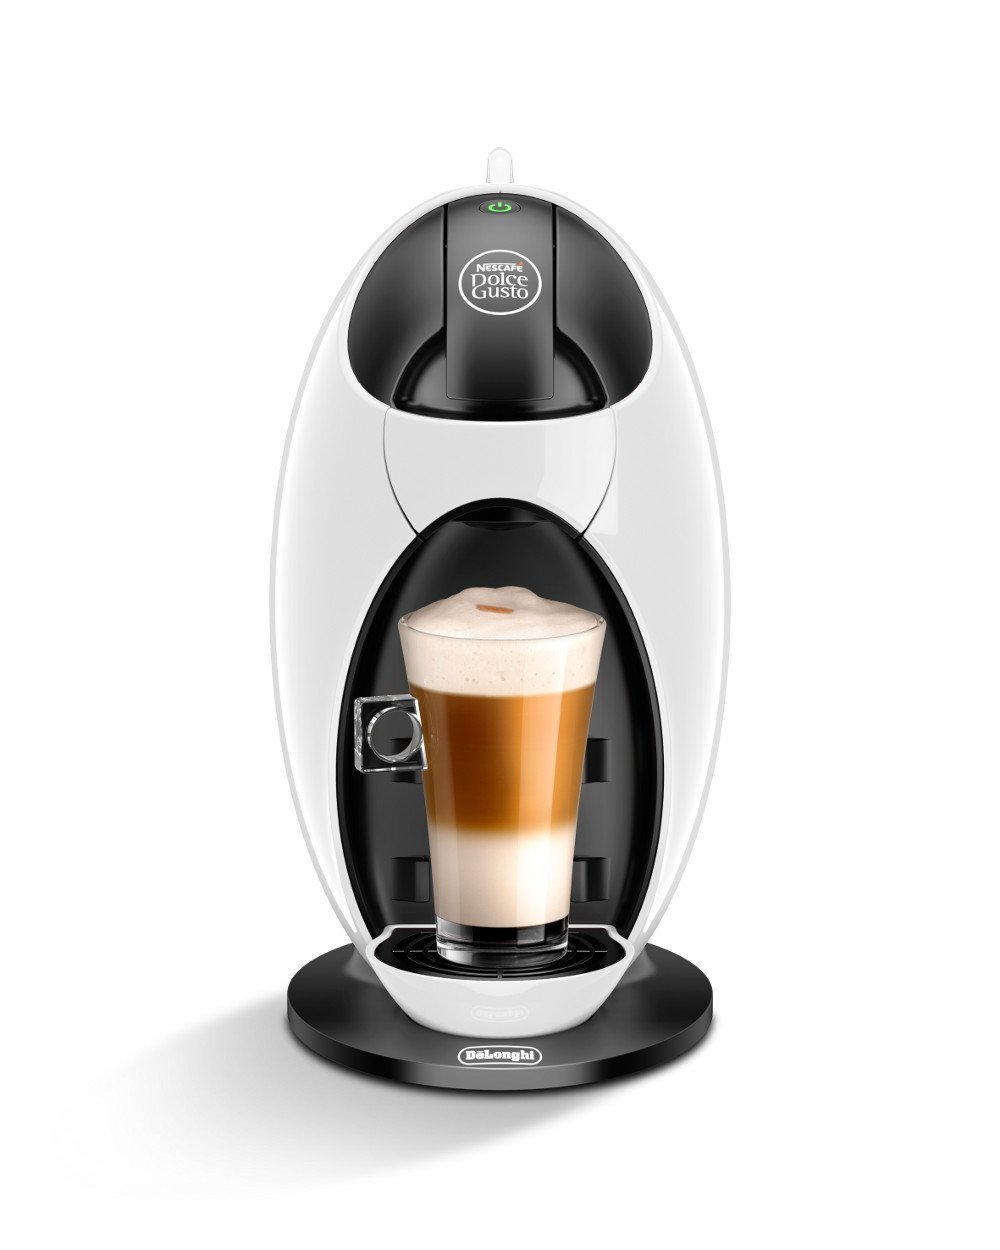 delonghi edg250 w nescafe dolce gusto jovia pod coffee. Black Bedroom Furniture Sets. Home Design Ideas